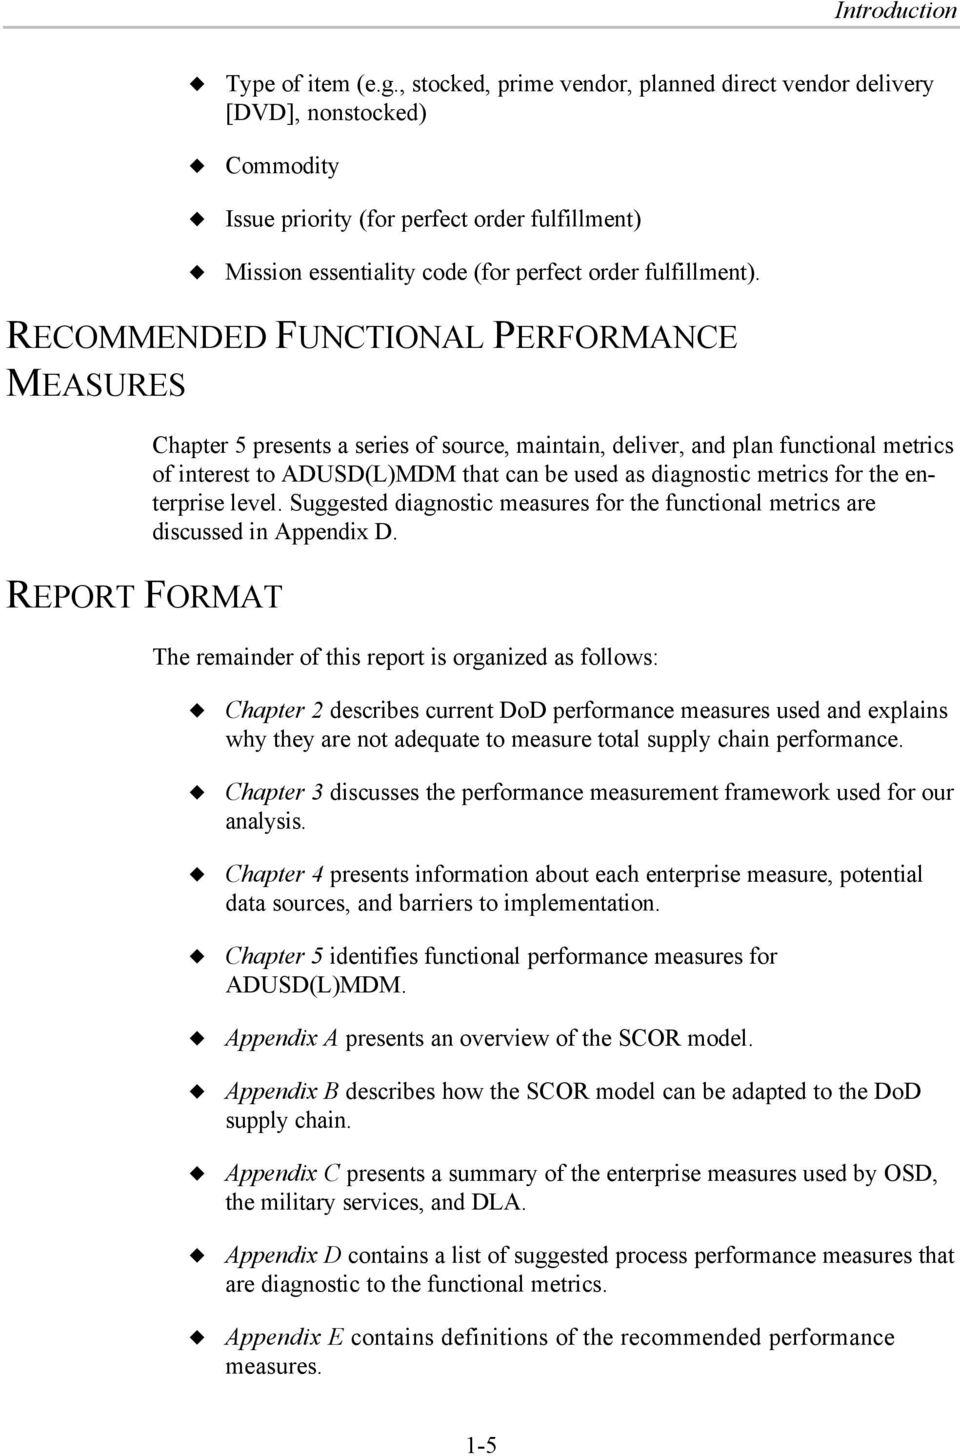 RECOMMENDED FUNCTIONAL PERFORMANCE MEASURES REPORT FORMAT Chapter 5 presents a series of source, maintain, deliver, and plan functional metrics of interest to ADUSD(L)MDM that can be used as